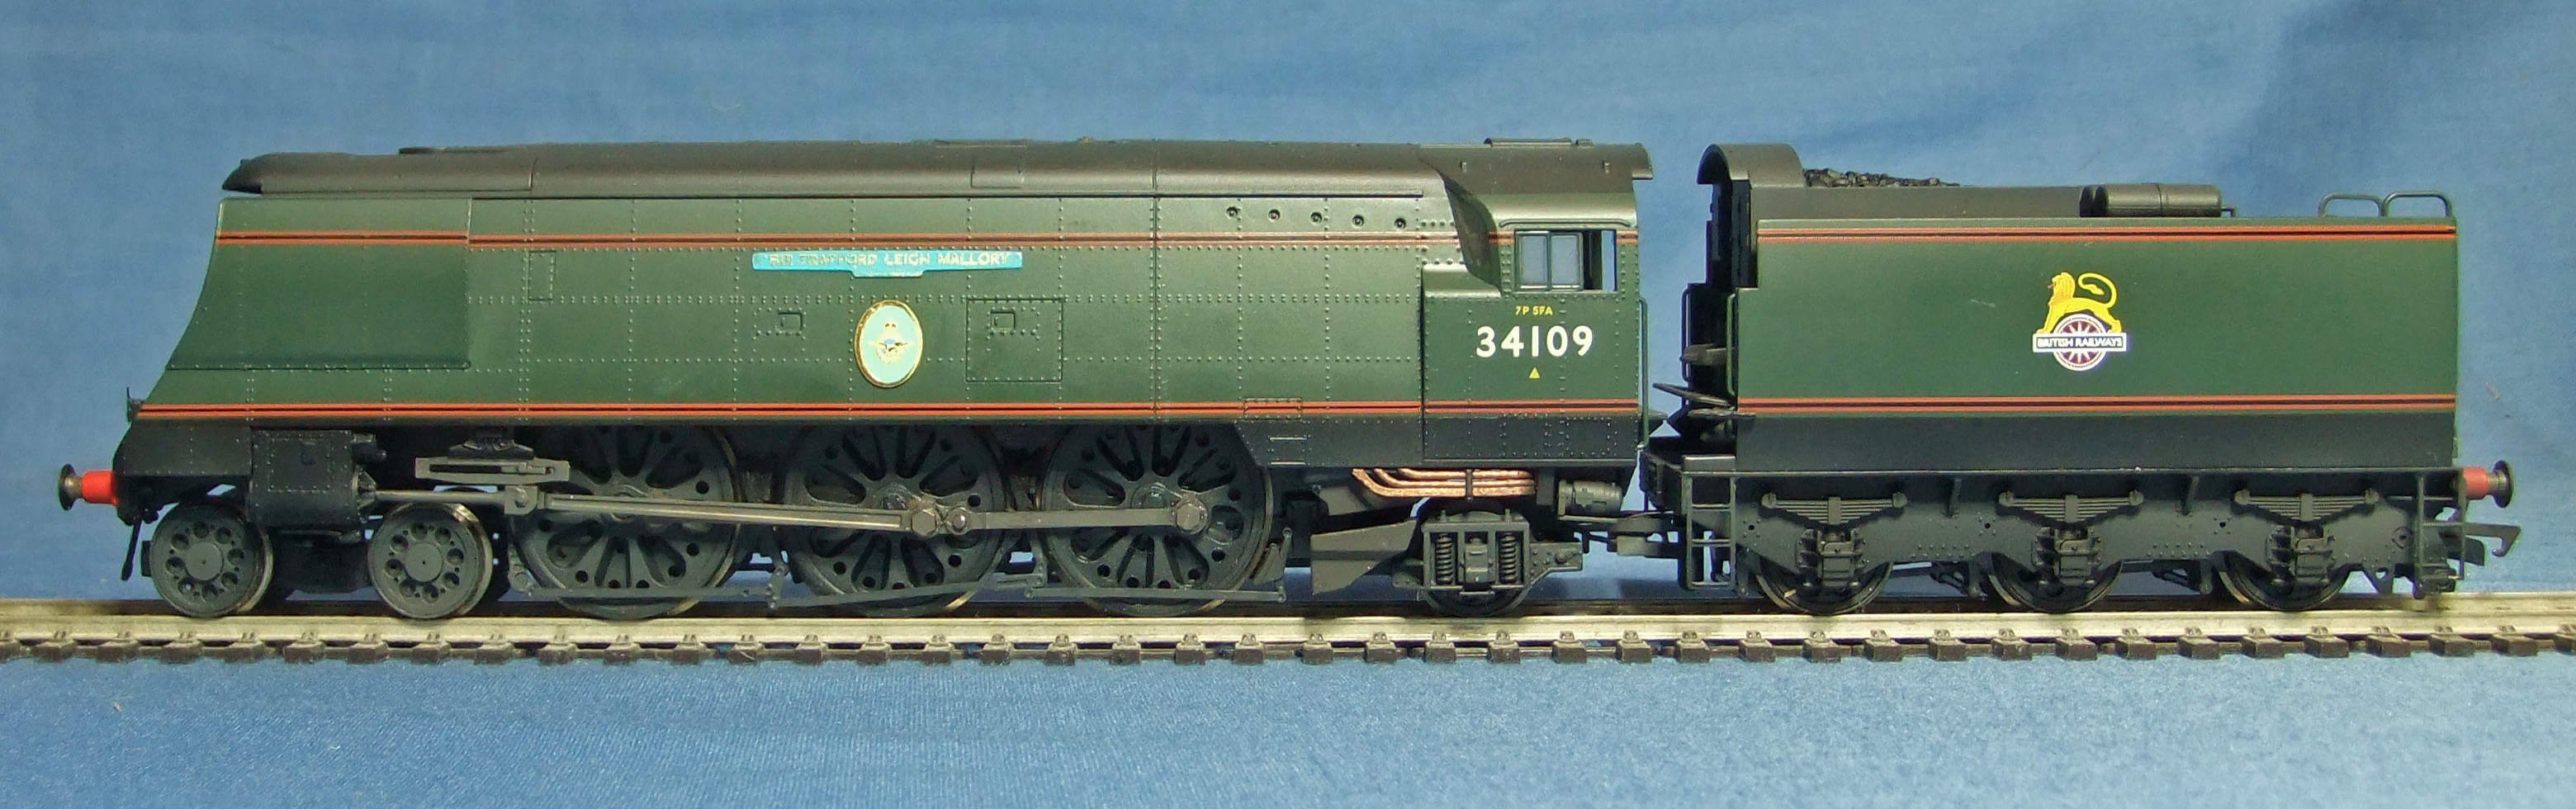 Battle of Britain Class No.34109